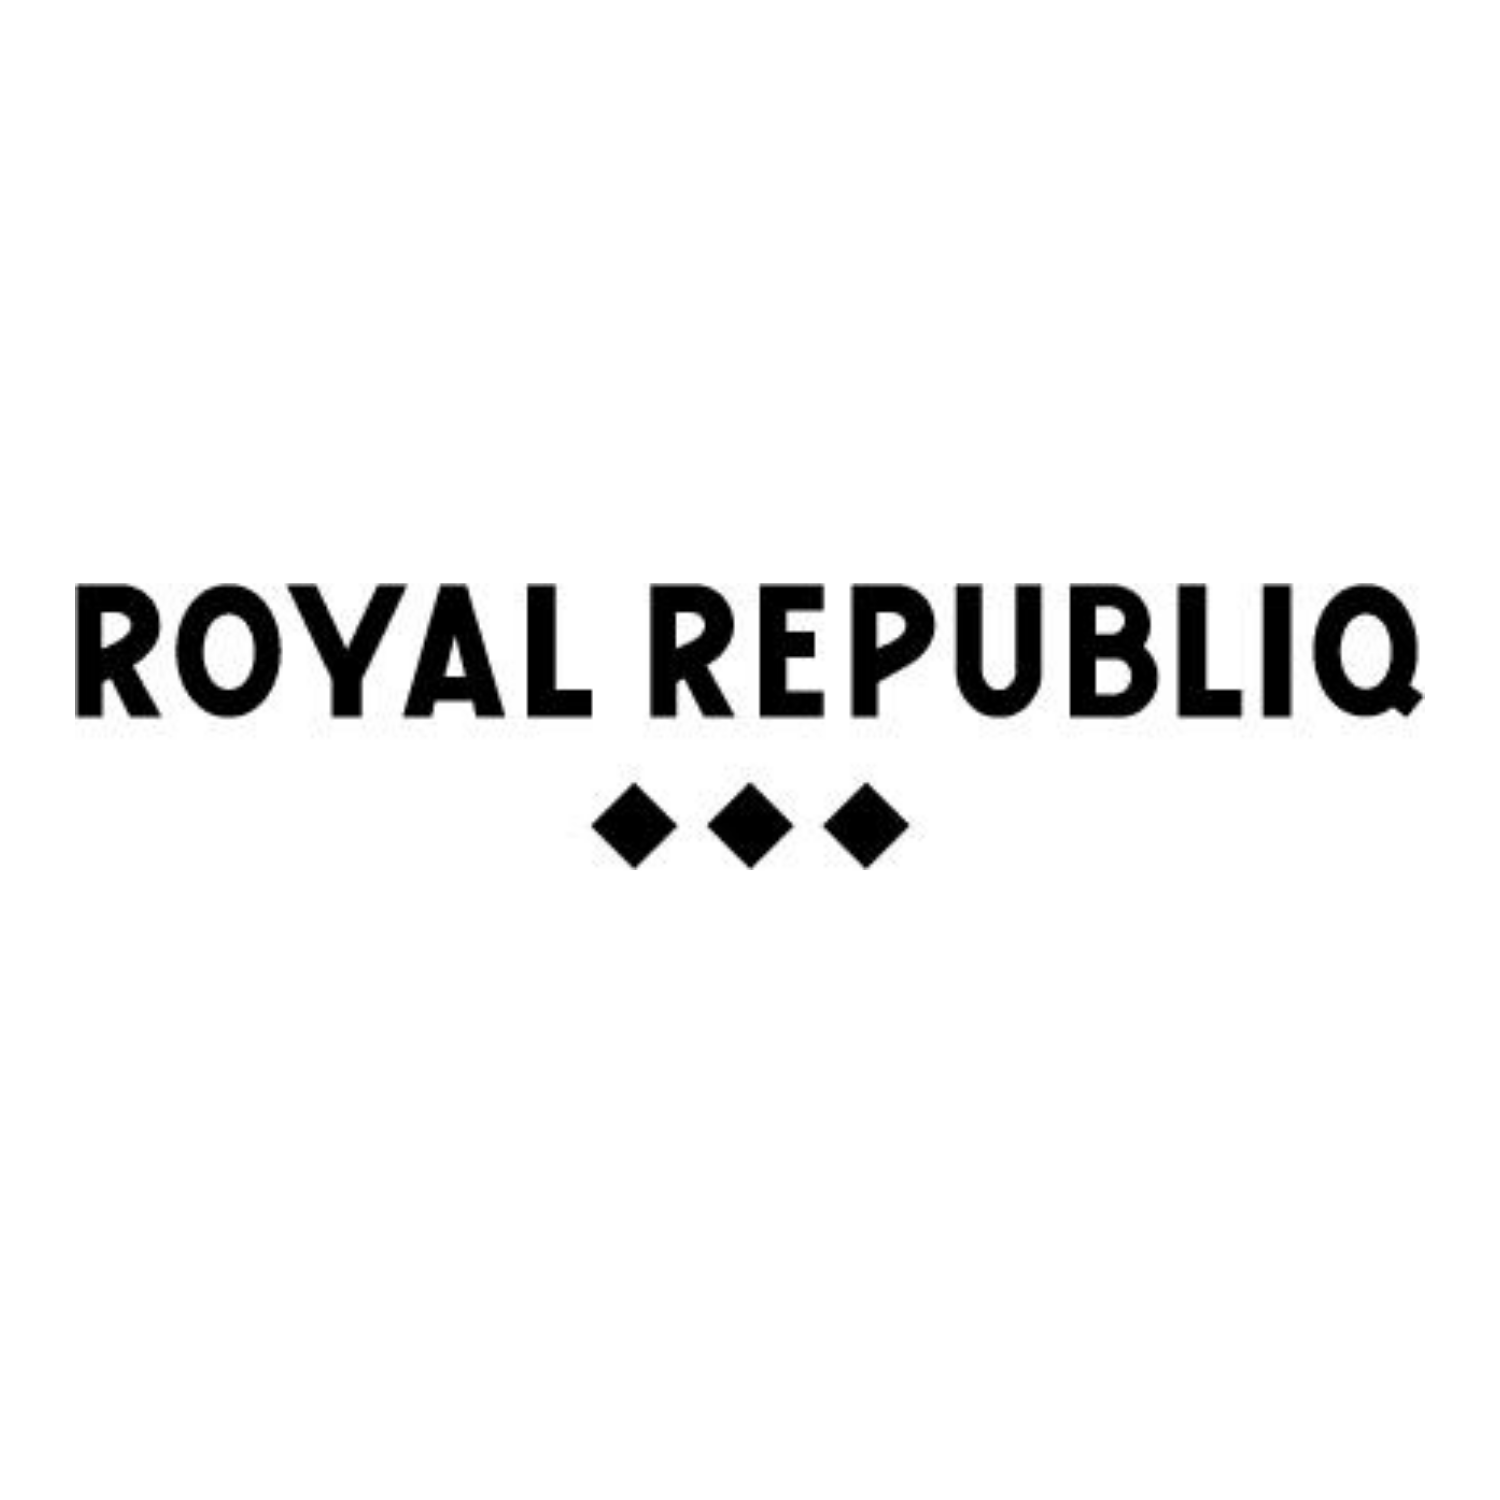 Royal RepubliQ | myconics